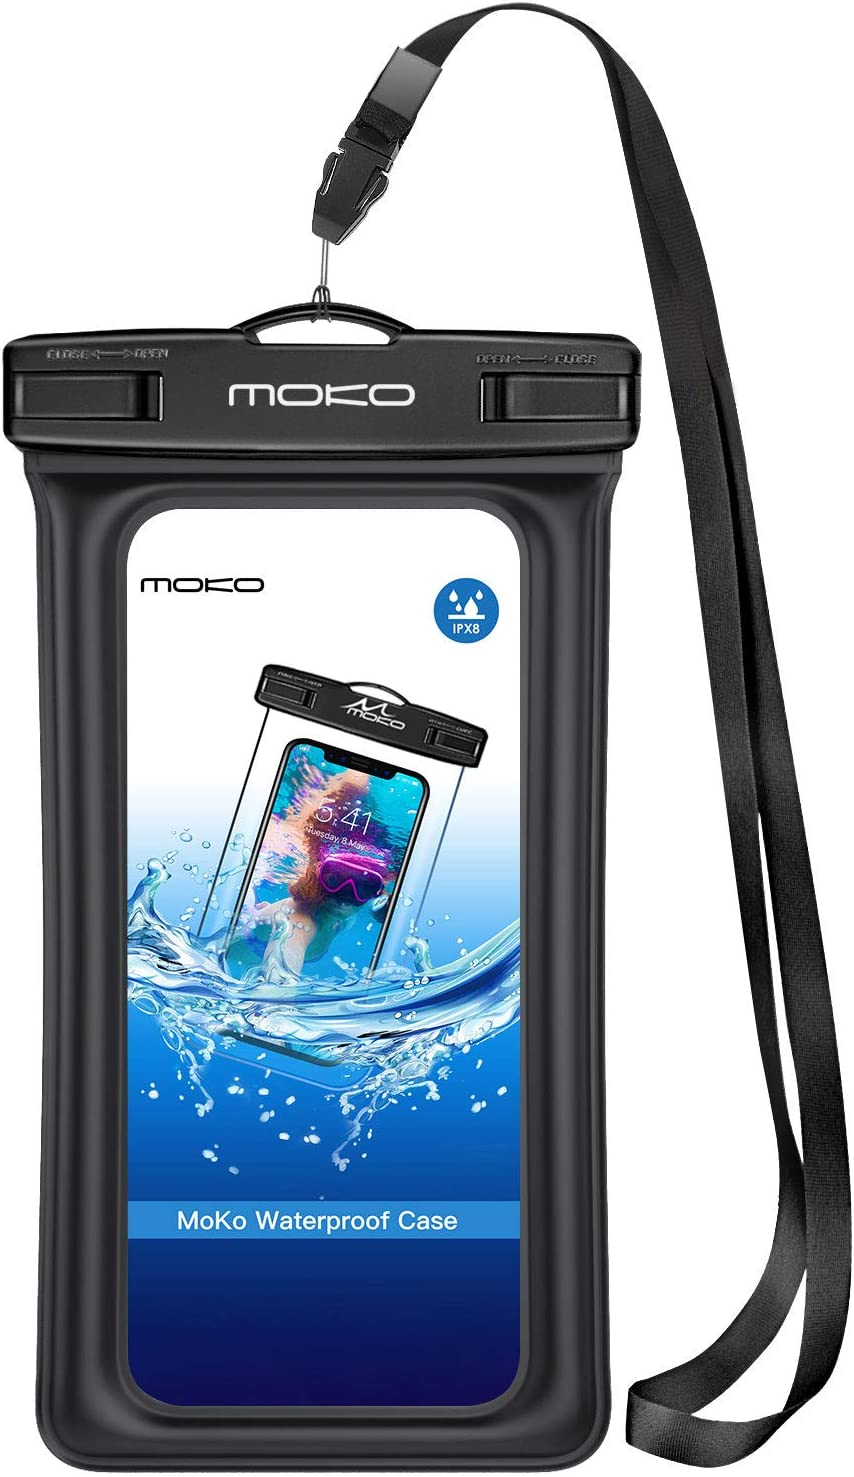 MoKo Floating Waterproof Phone Pouch Holder, Floatable Phone Case Dry Bag with Lanyard Armband Compatible withiPhone 13/13 Pro Max/iPhone 12/12 Pro Max/11 Pro, Xr/Xs Max,8/7, Samsung S21/S10/S9/S8